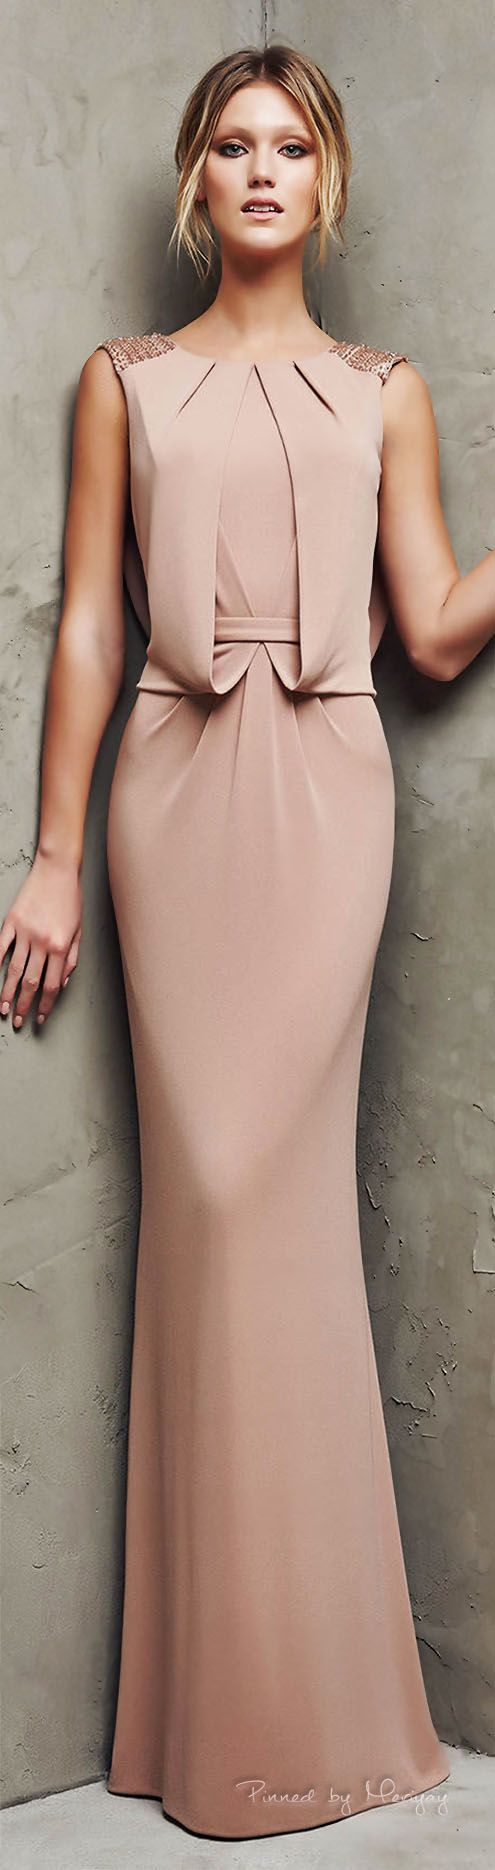 14 best Backless evening gowns images on Pinterest | Evening gowns ...